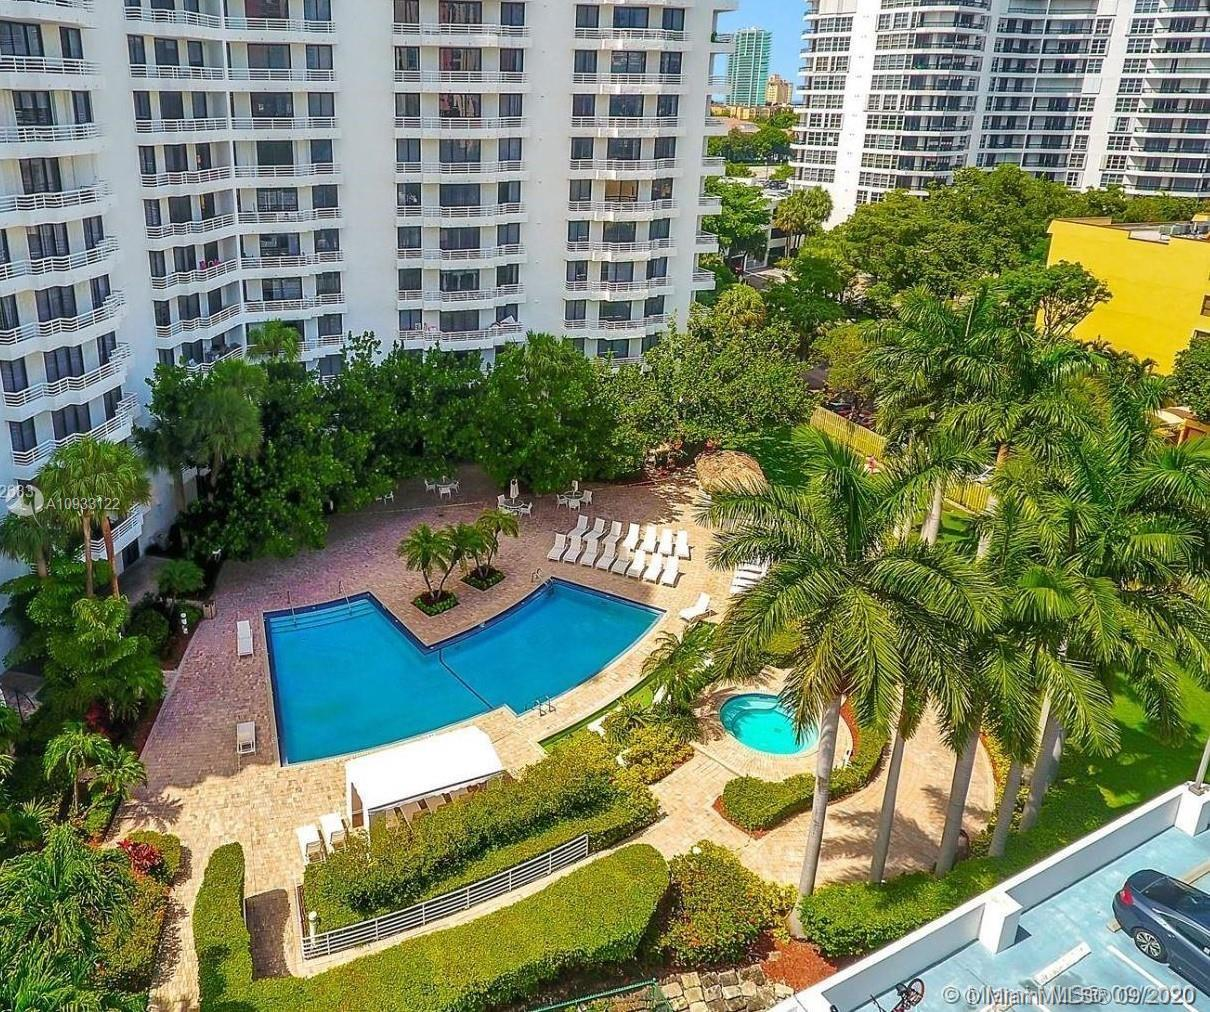 SPACIOUS & COMFORTABLE 2/2 UNIT IN THIS VERY WELL MANAGED CONDOMINIUM CENTRALLY LOCATED IN THE HEART